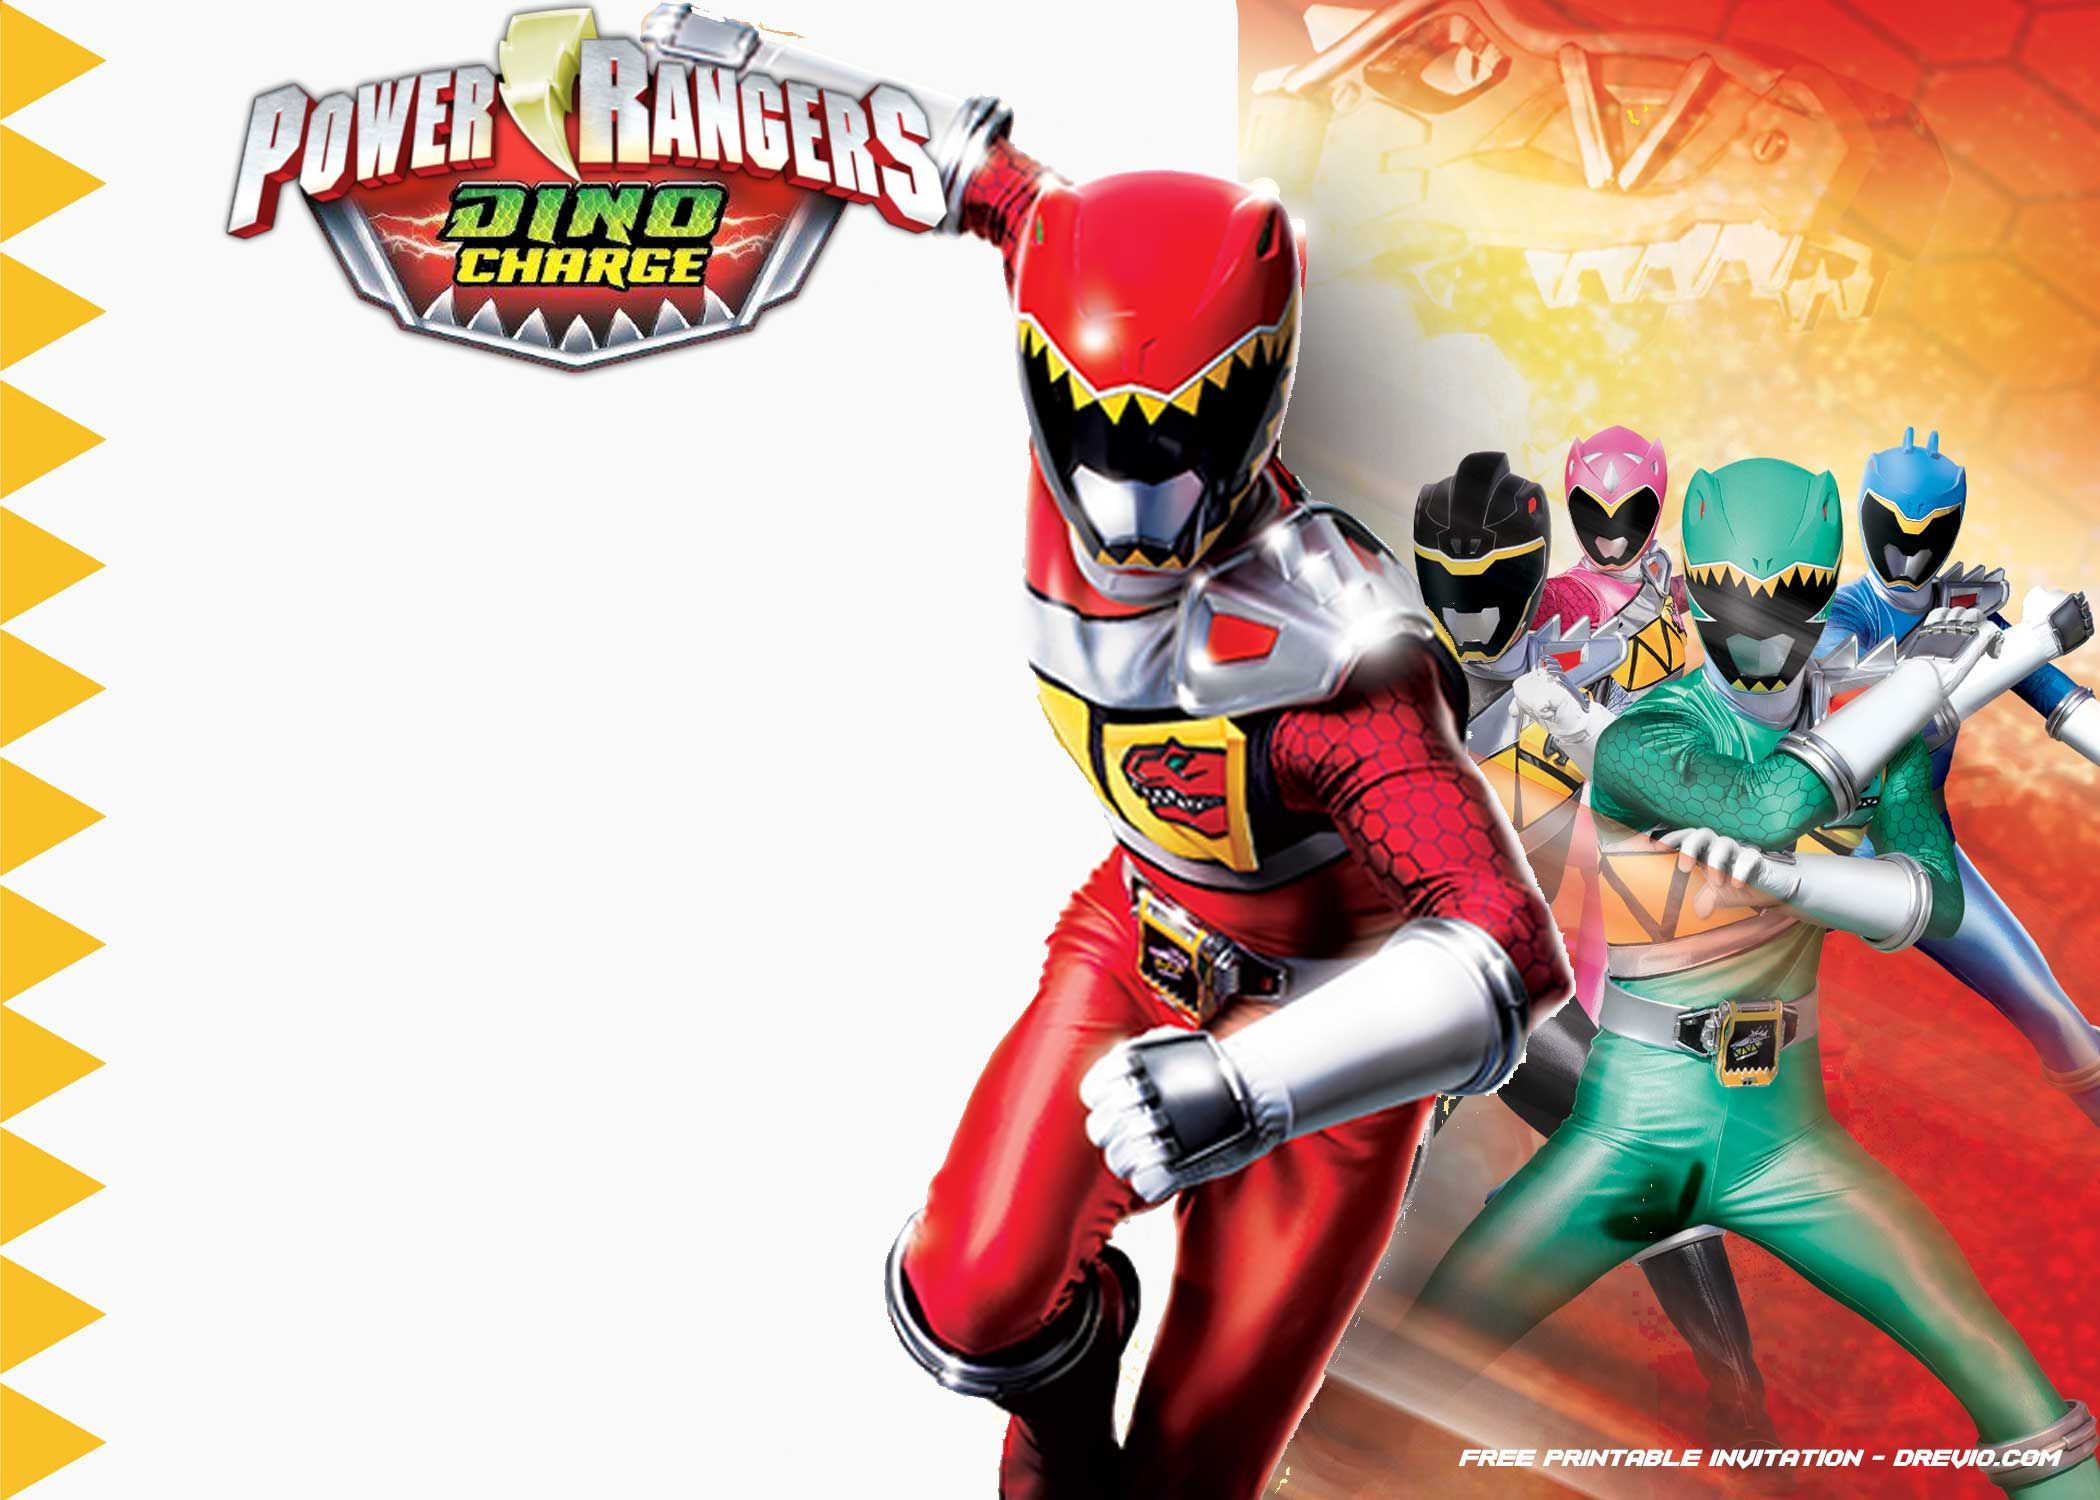 Free Printable Power Rangers Dino Charge Invitation | Desserts - Free Printable Power Ranger Birthday Invitations